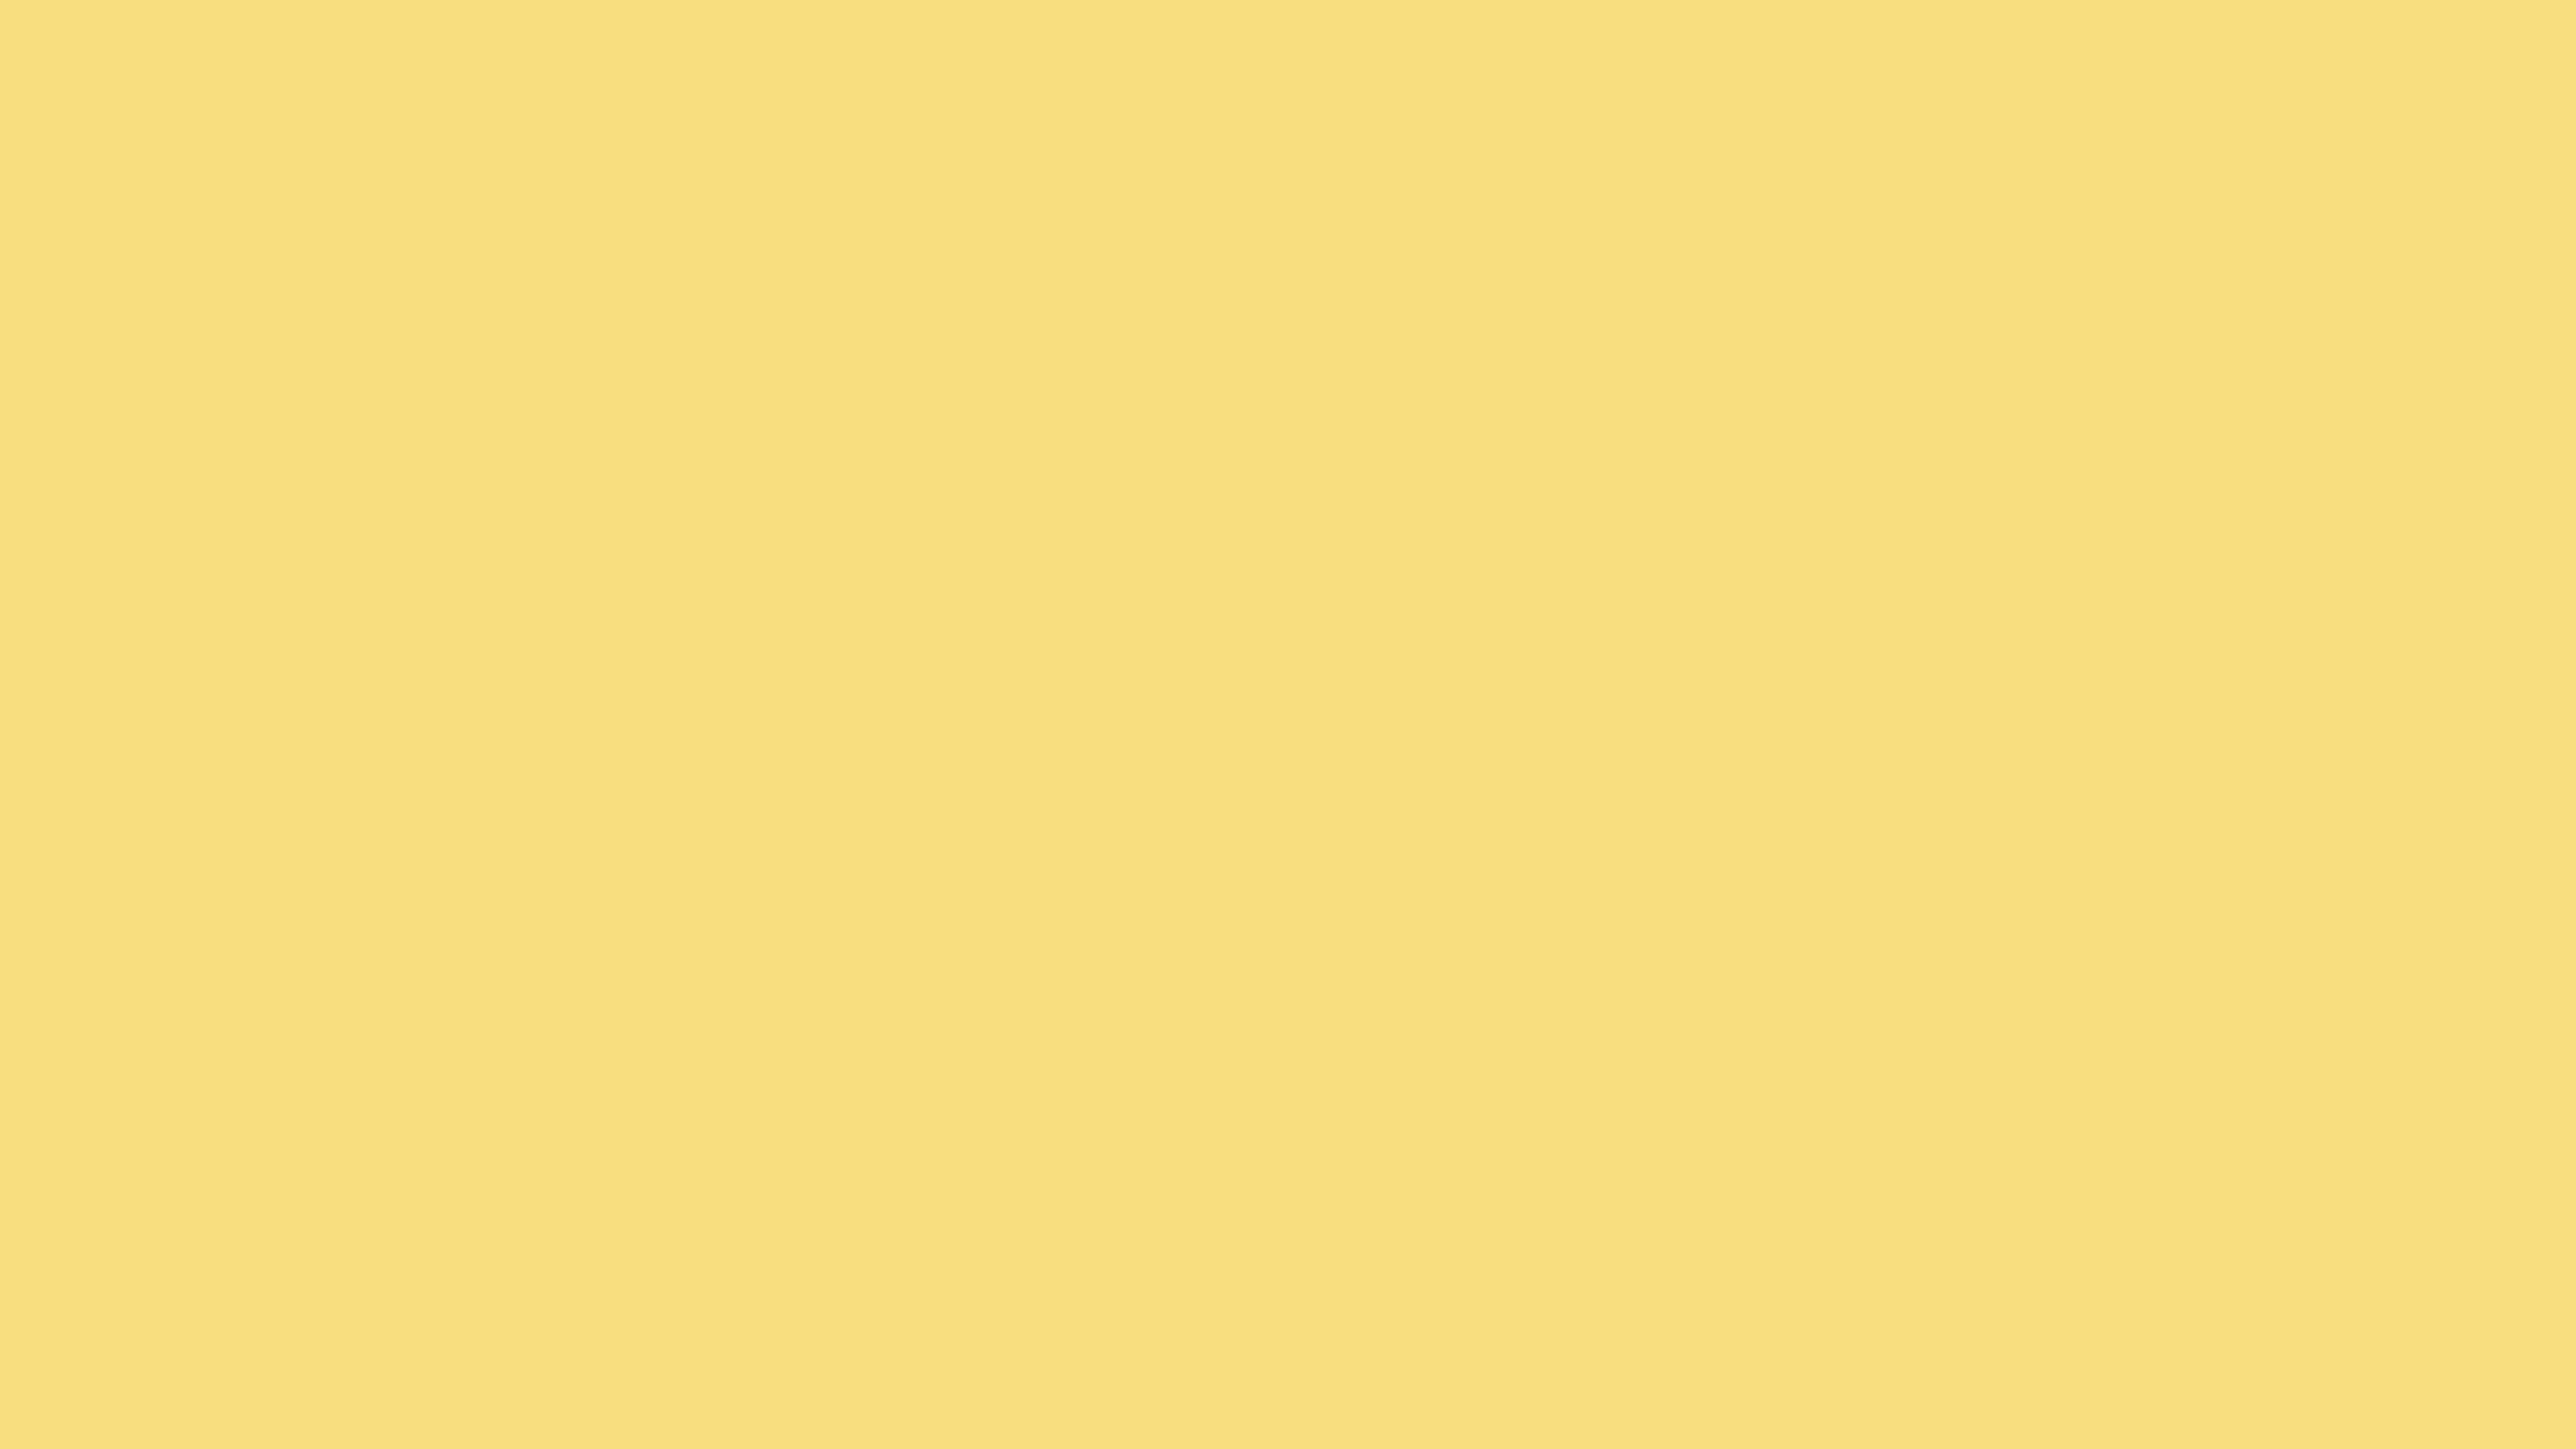 7680x4320 Mellow Yellow Solid Color Background